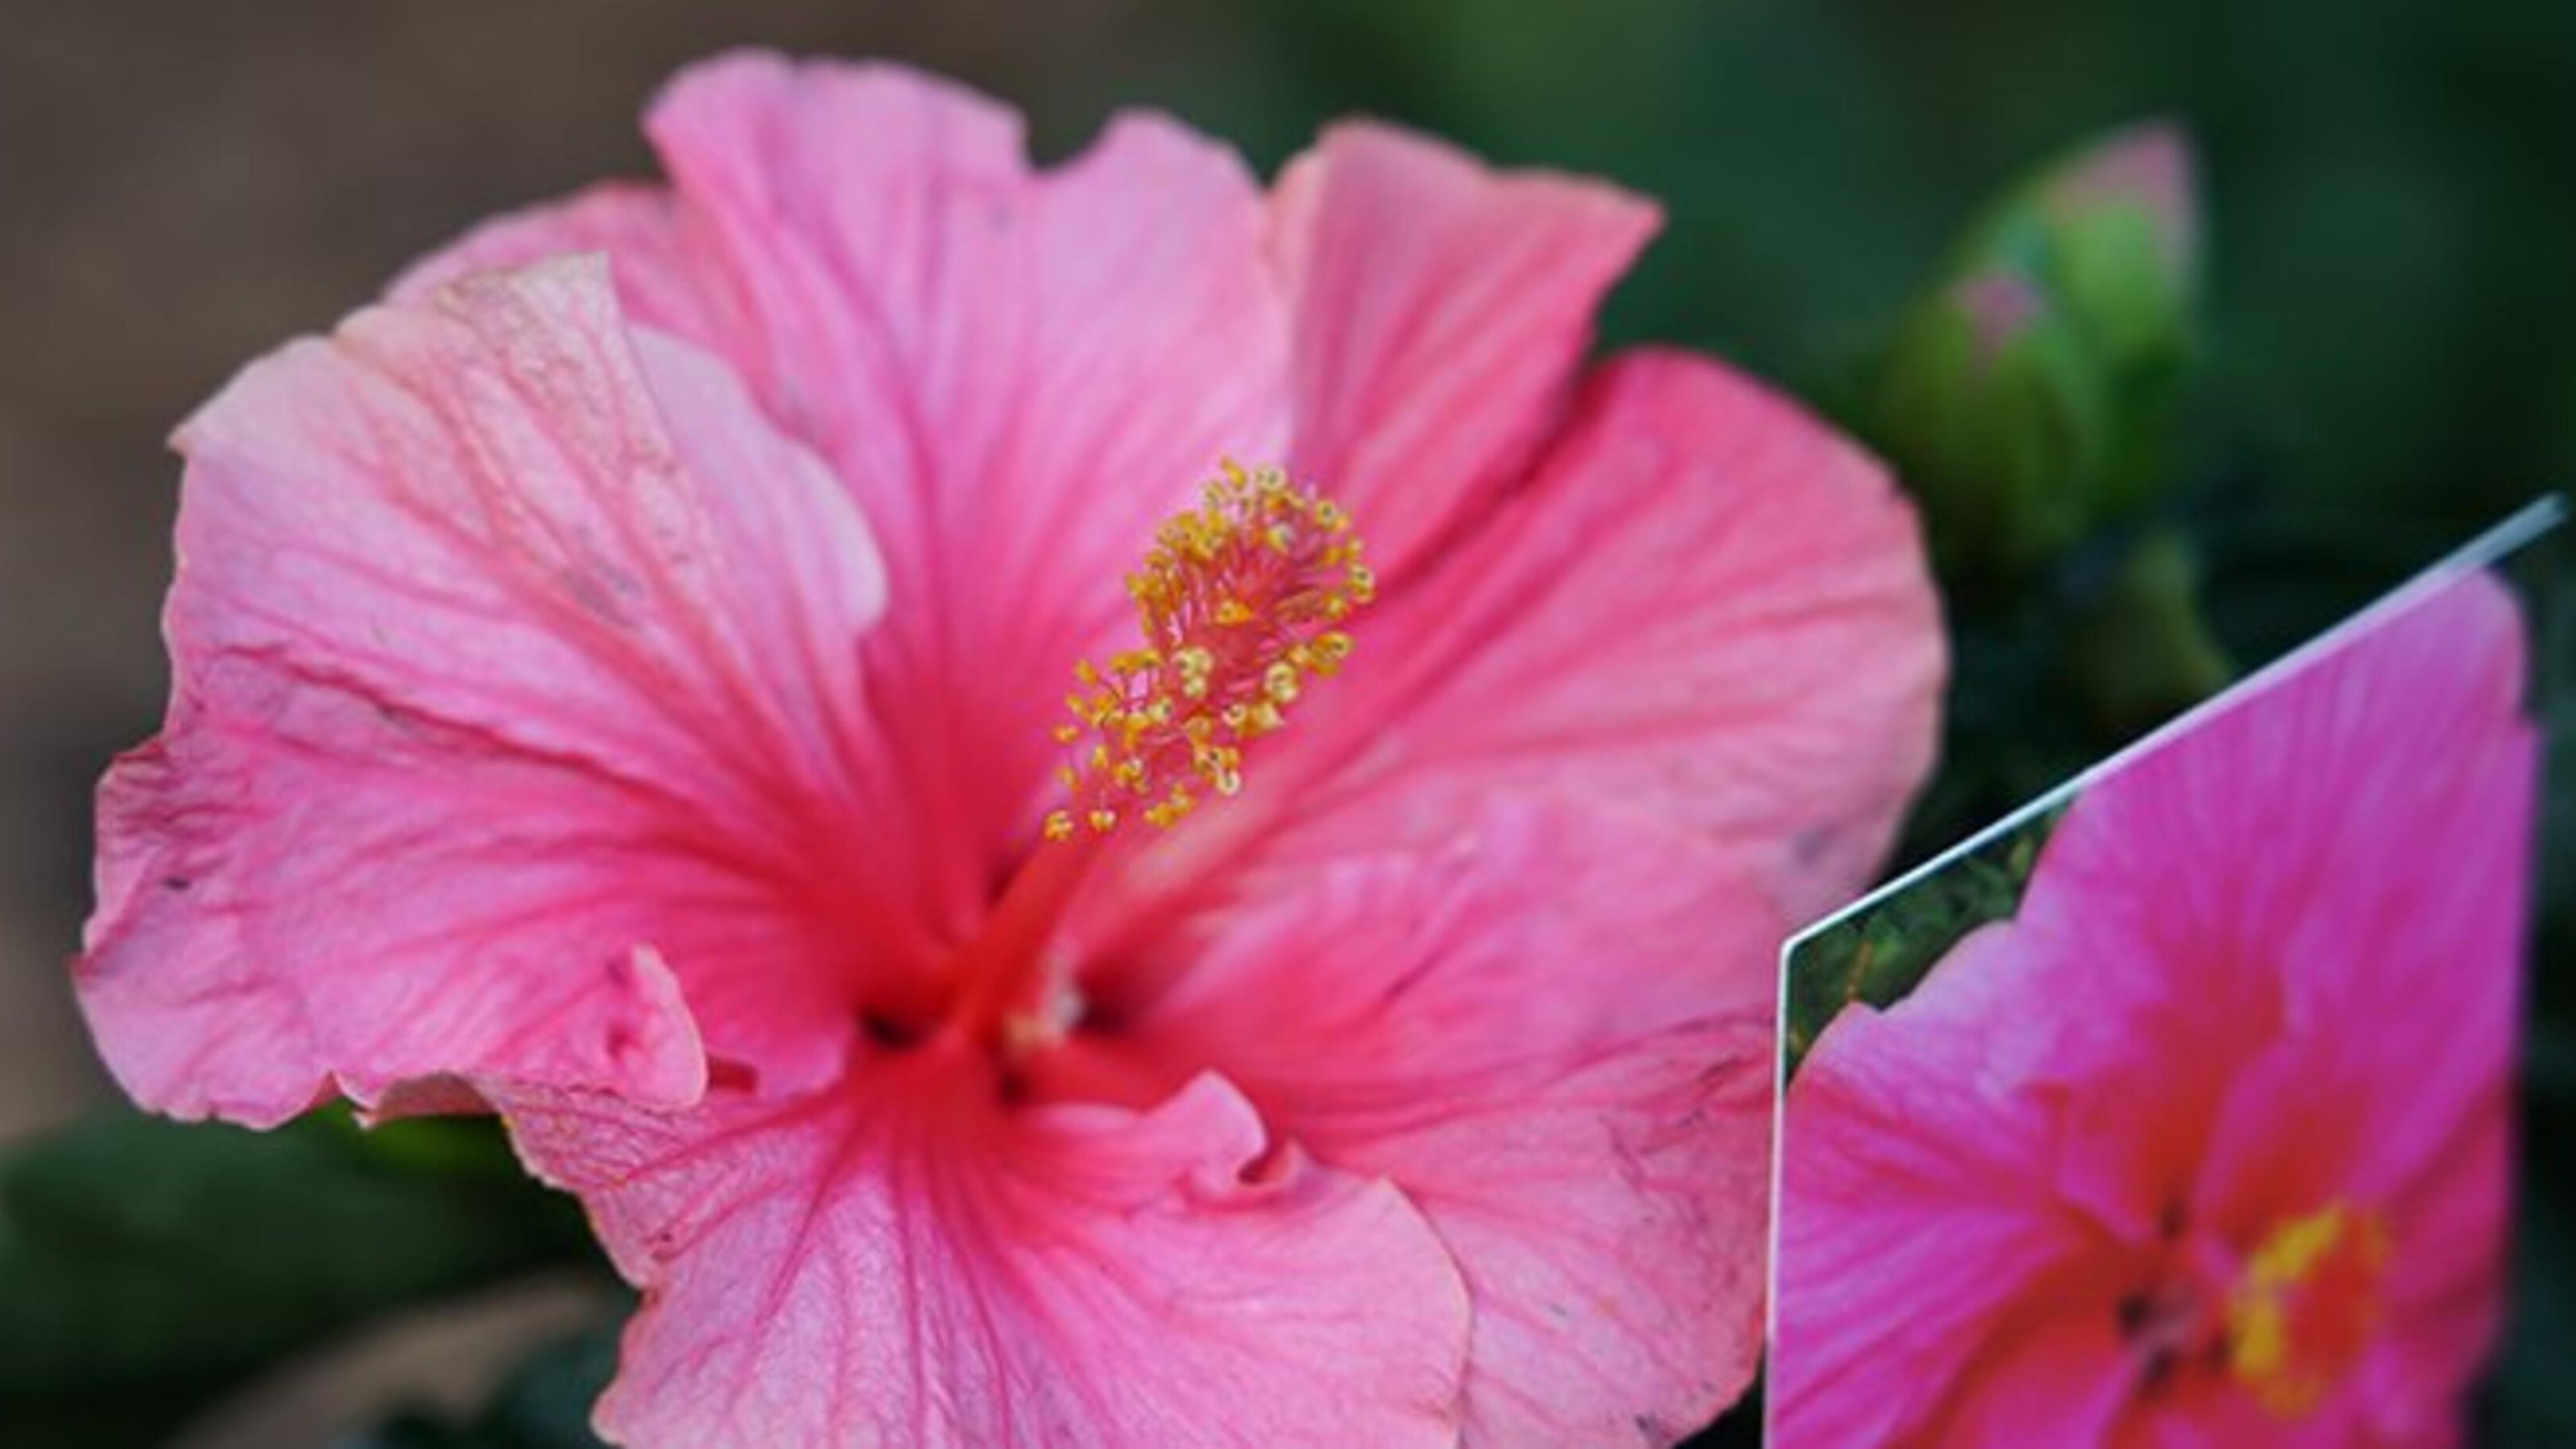 Close up of a pink hibiscus flower